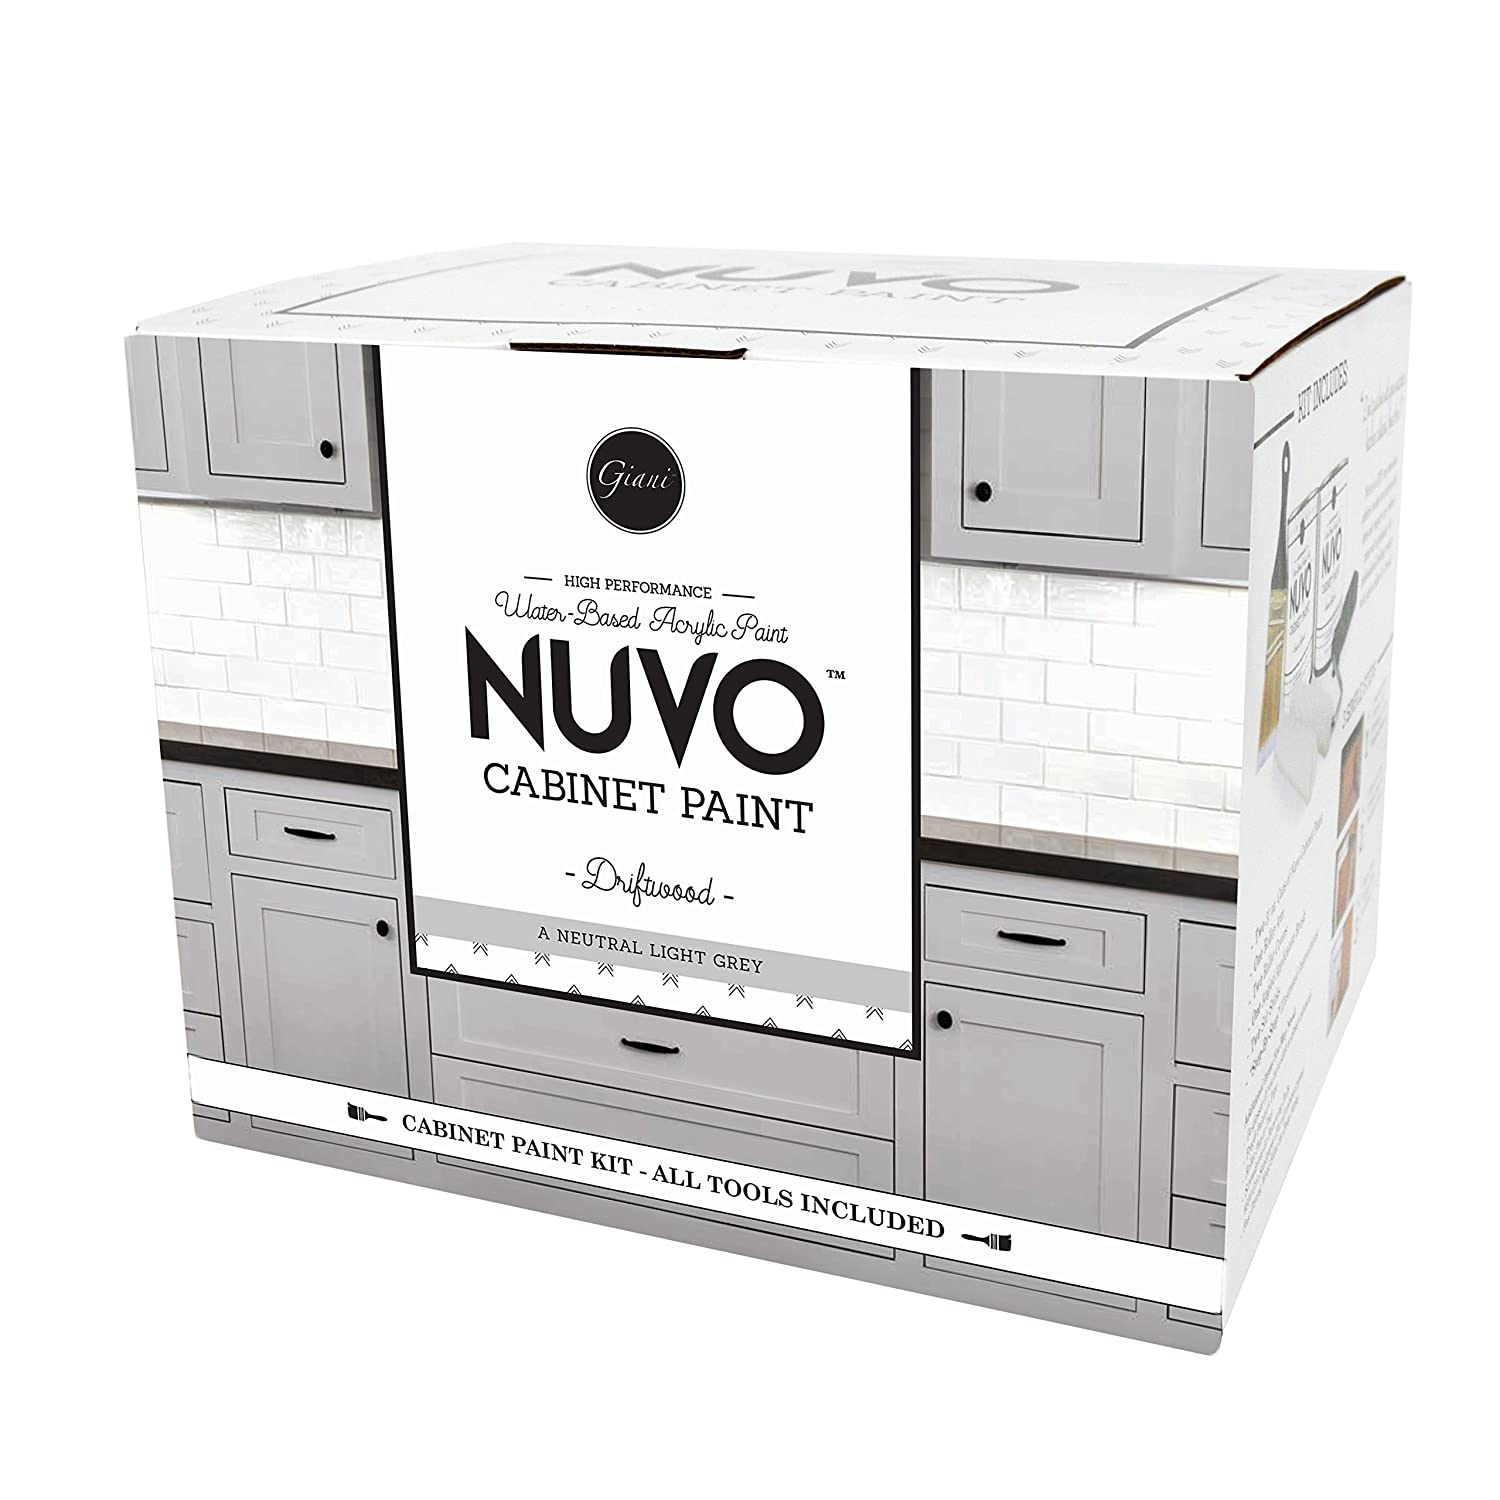 Nuvo driftwood 1 day cabinet makeover kit amazon com